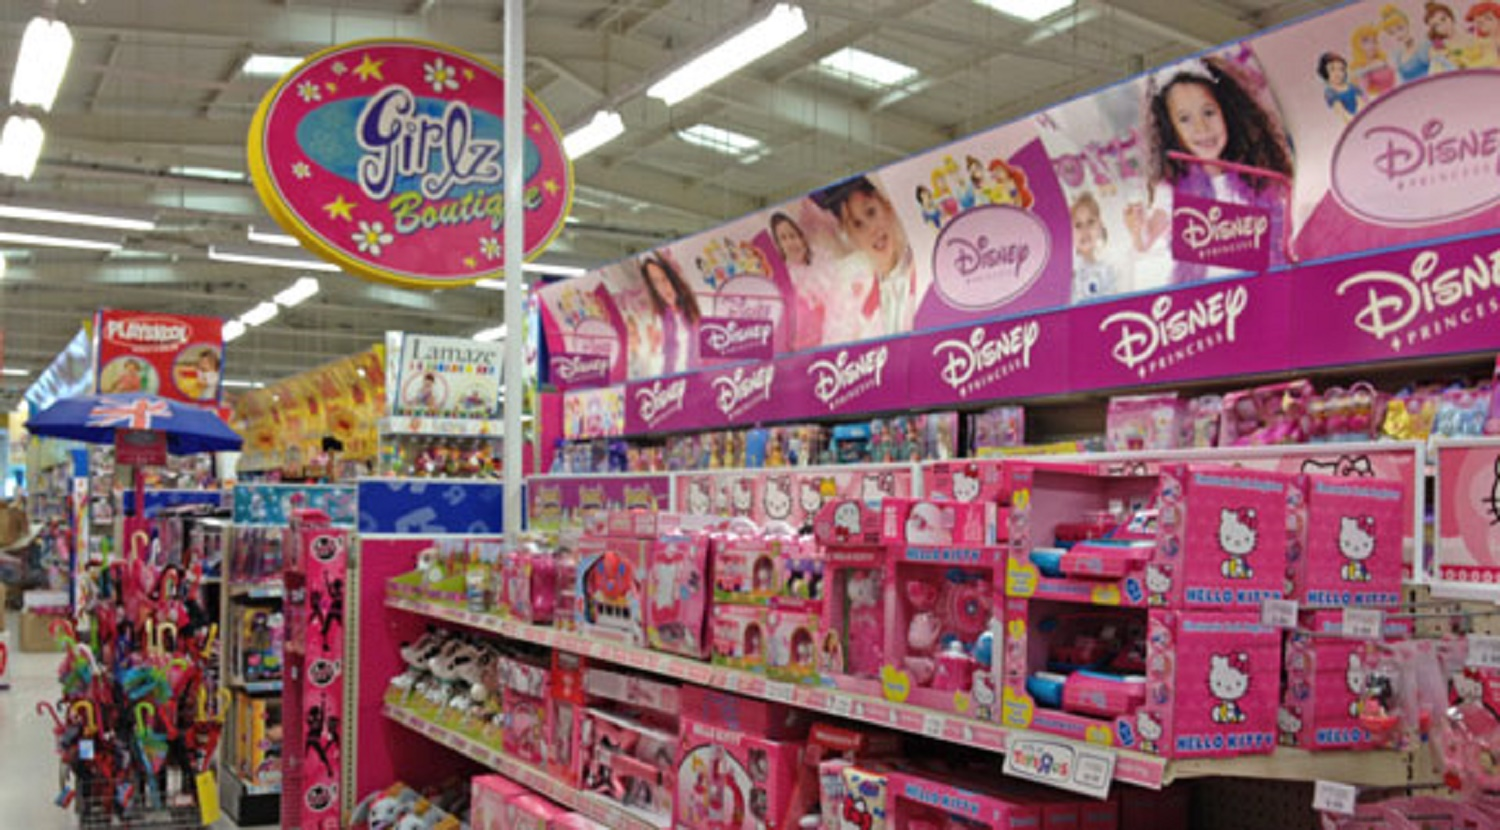 Girl Toys At Toys R Us : Toys r us to scrap 'boy and 'girl labels on · pinknews